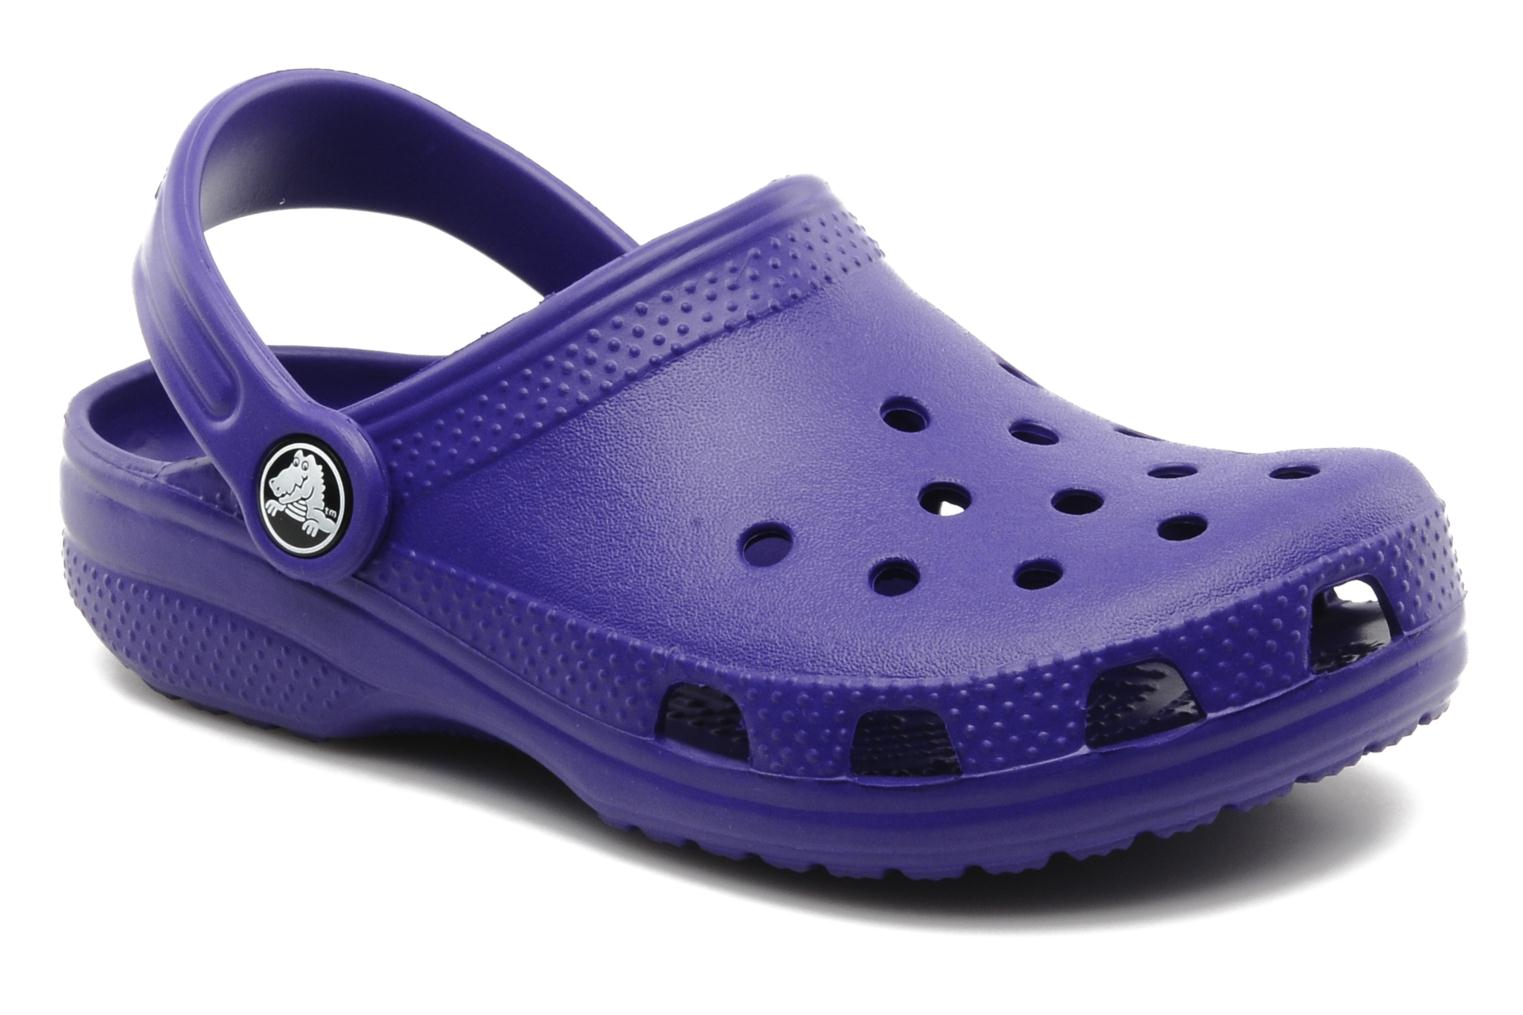 Crocs Kids Cayman Sandals in Purple at Sarenza.co.uk (106816)